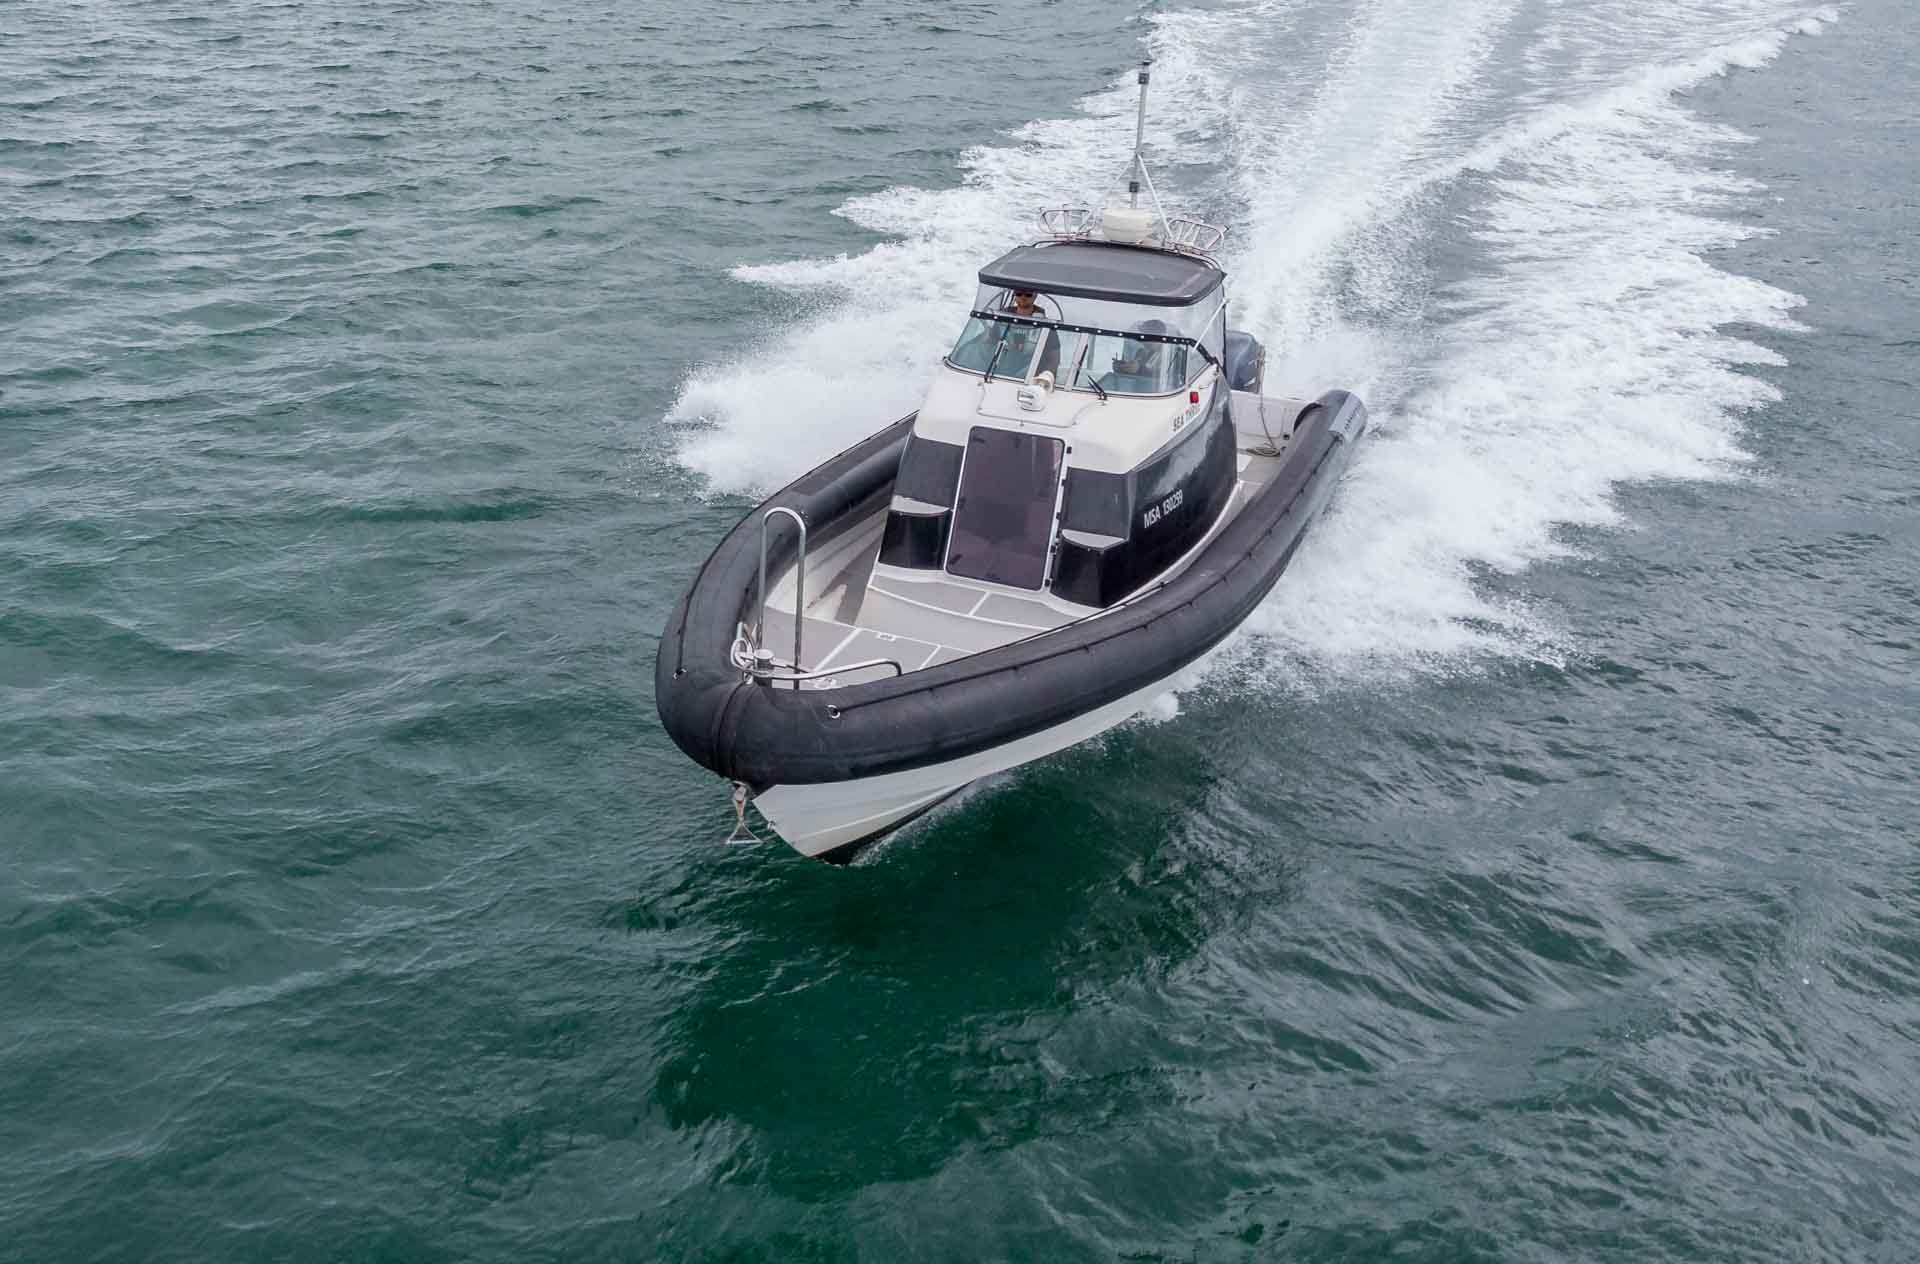 RHIB 12Meter Work Boat to Hire in New Zealand